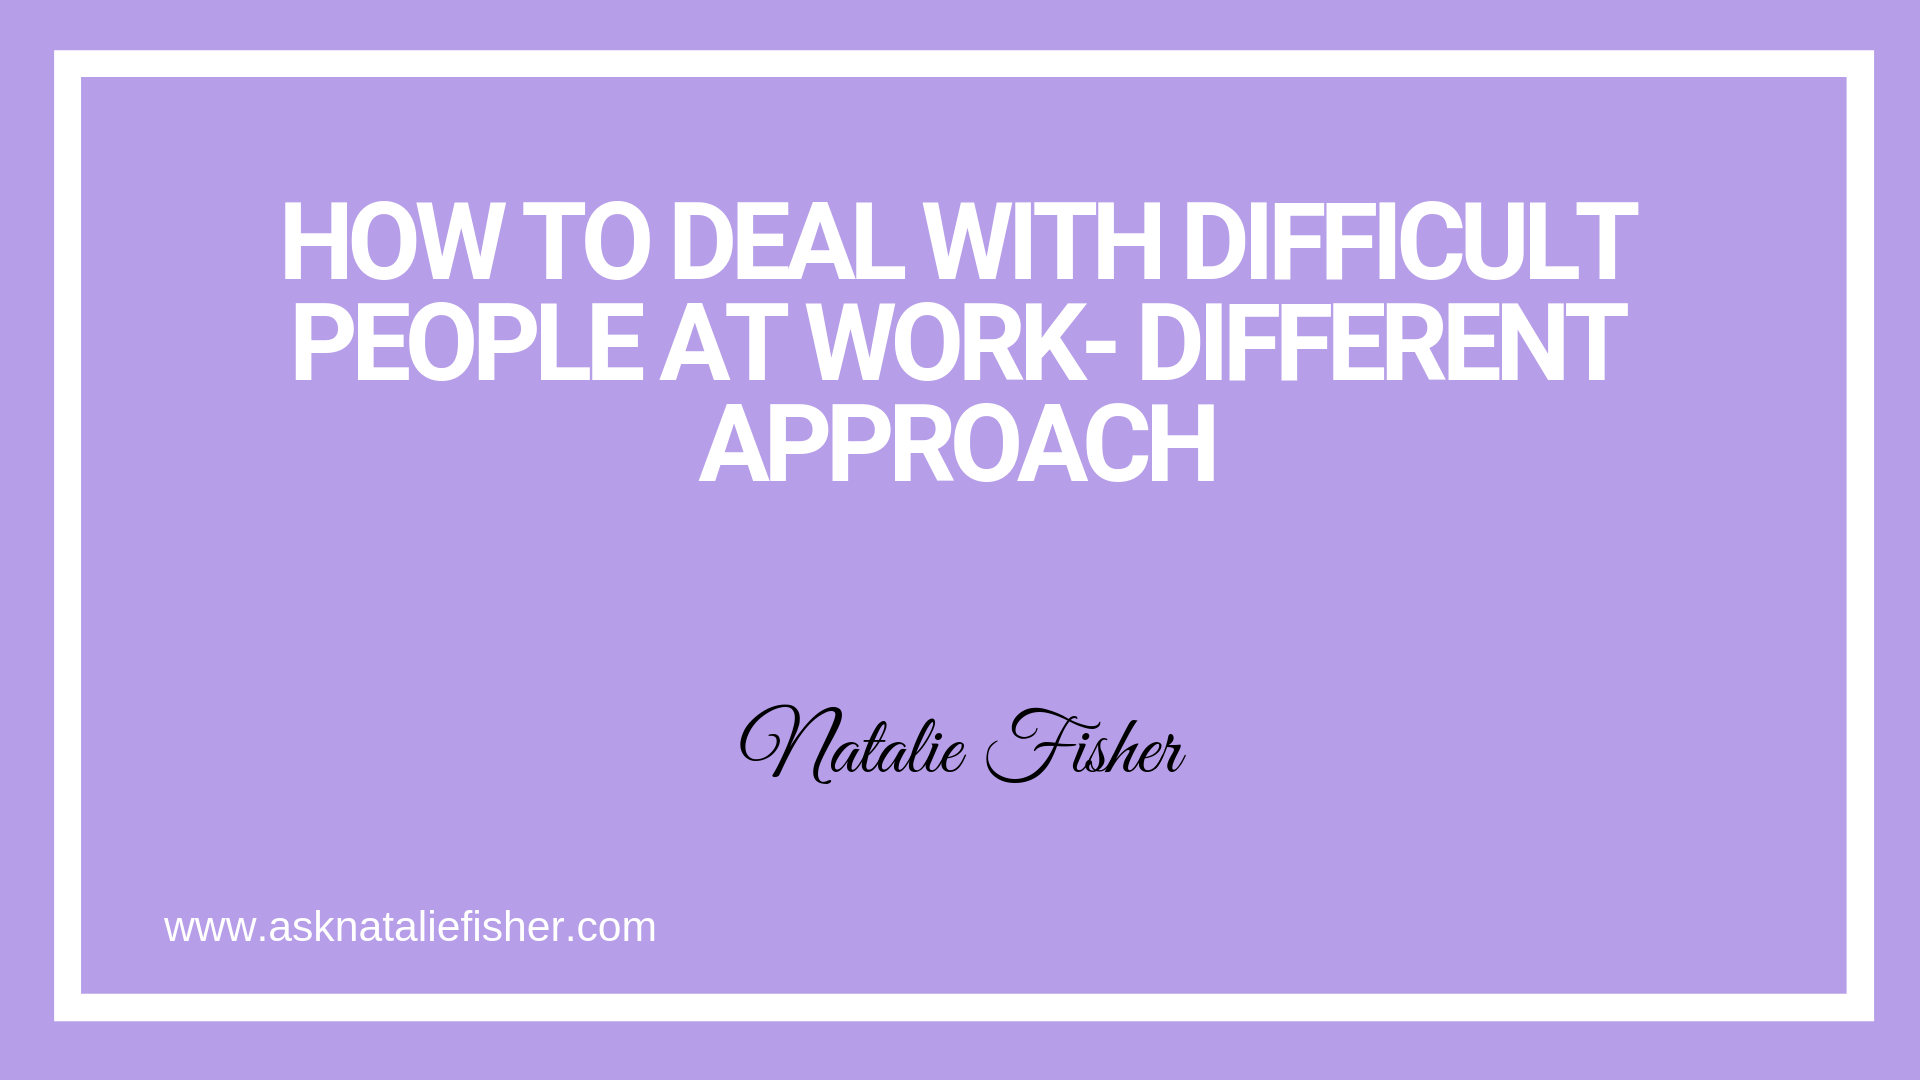 How To Deal With Difficult People At Work- Different Approach